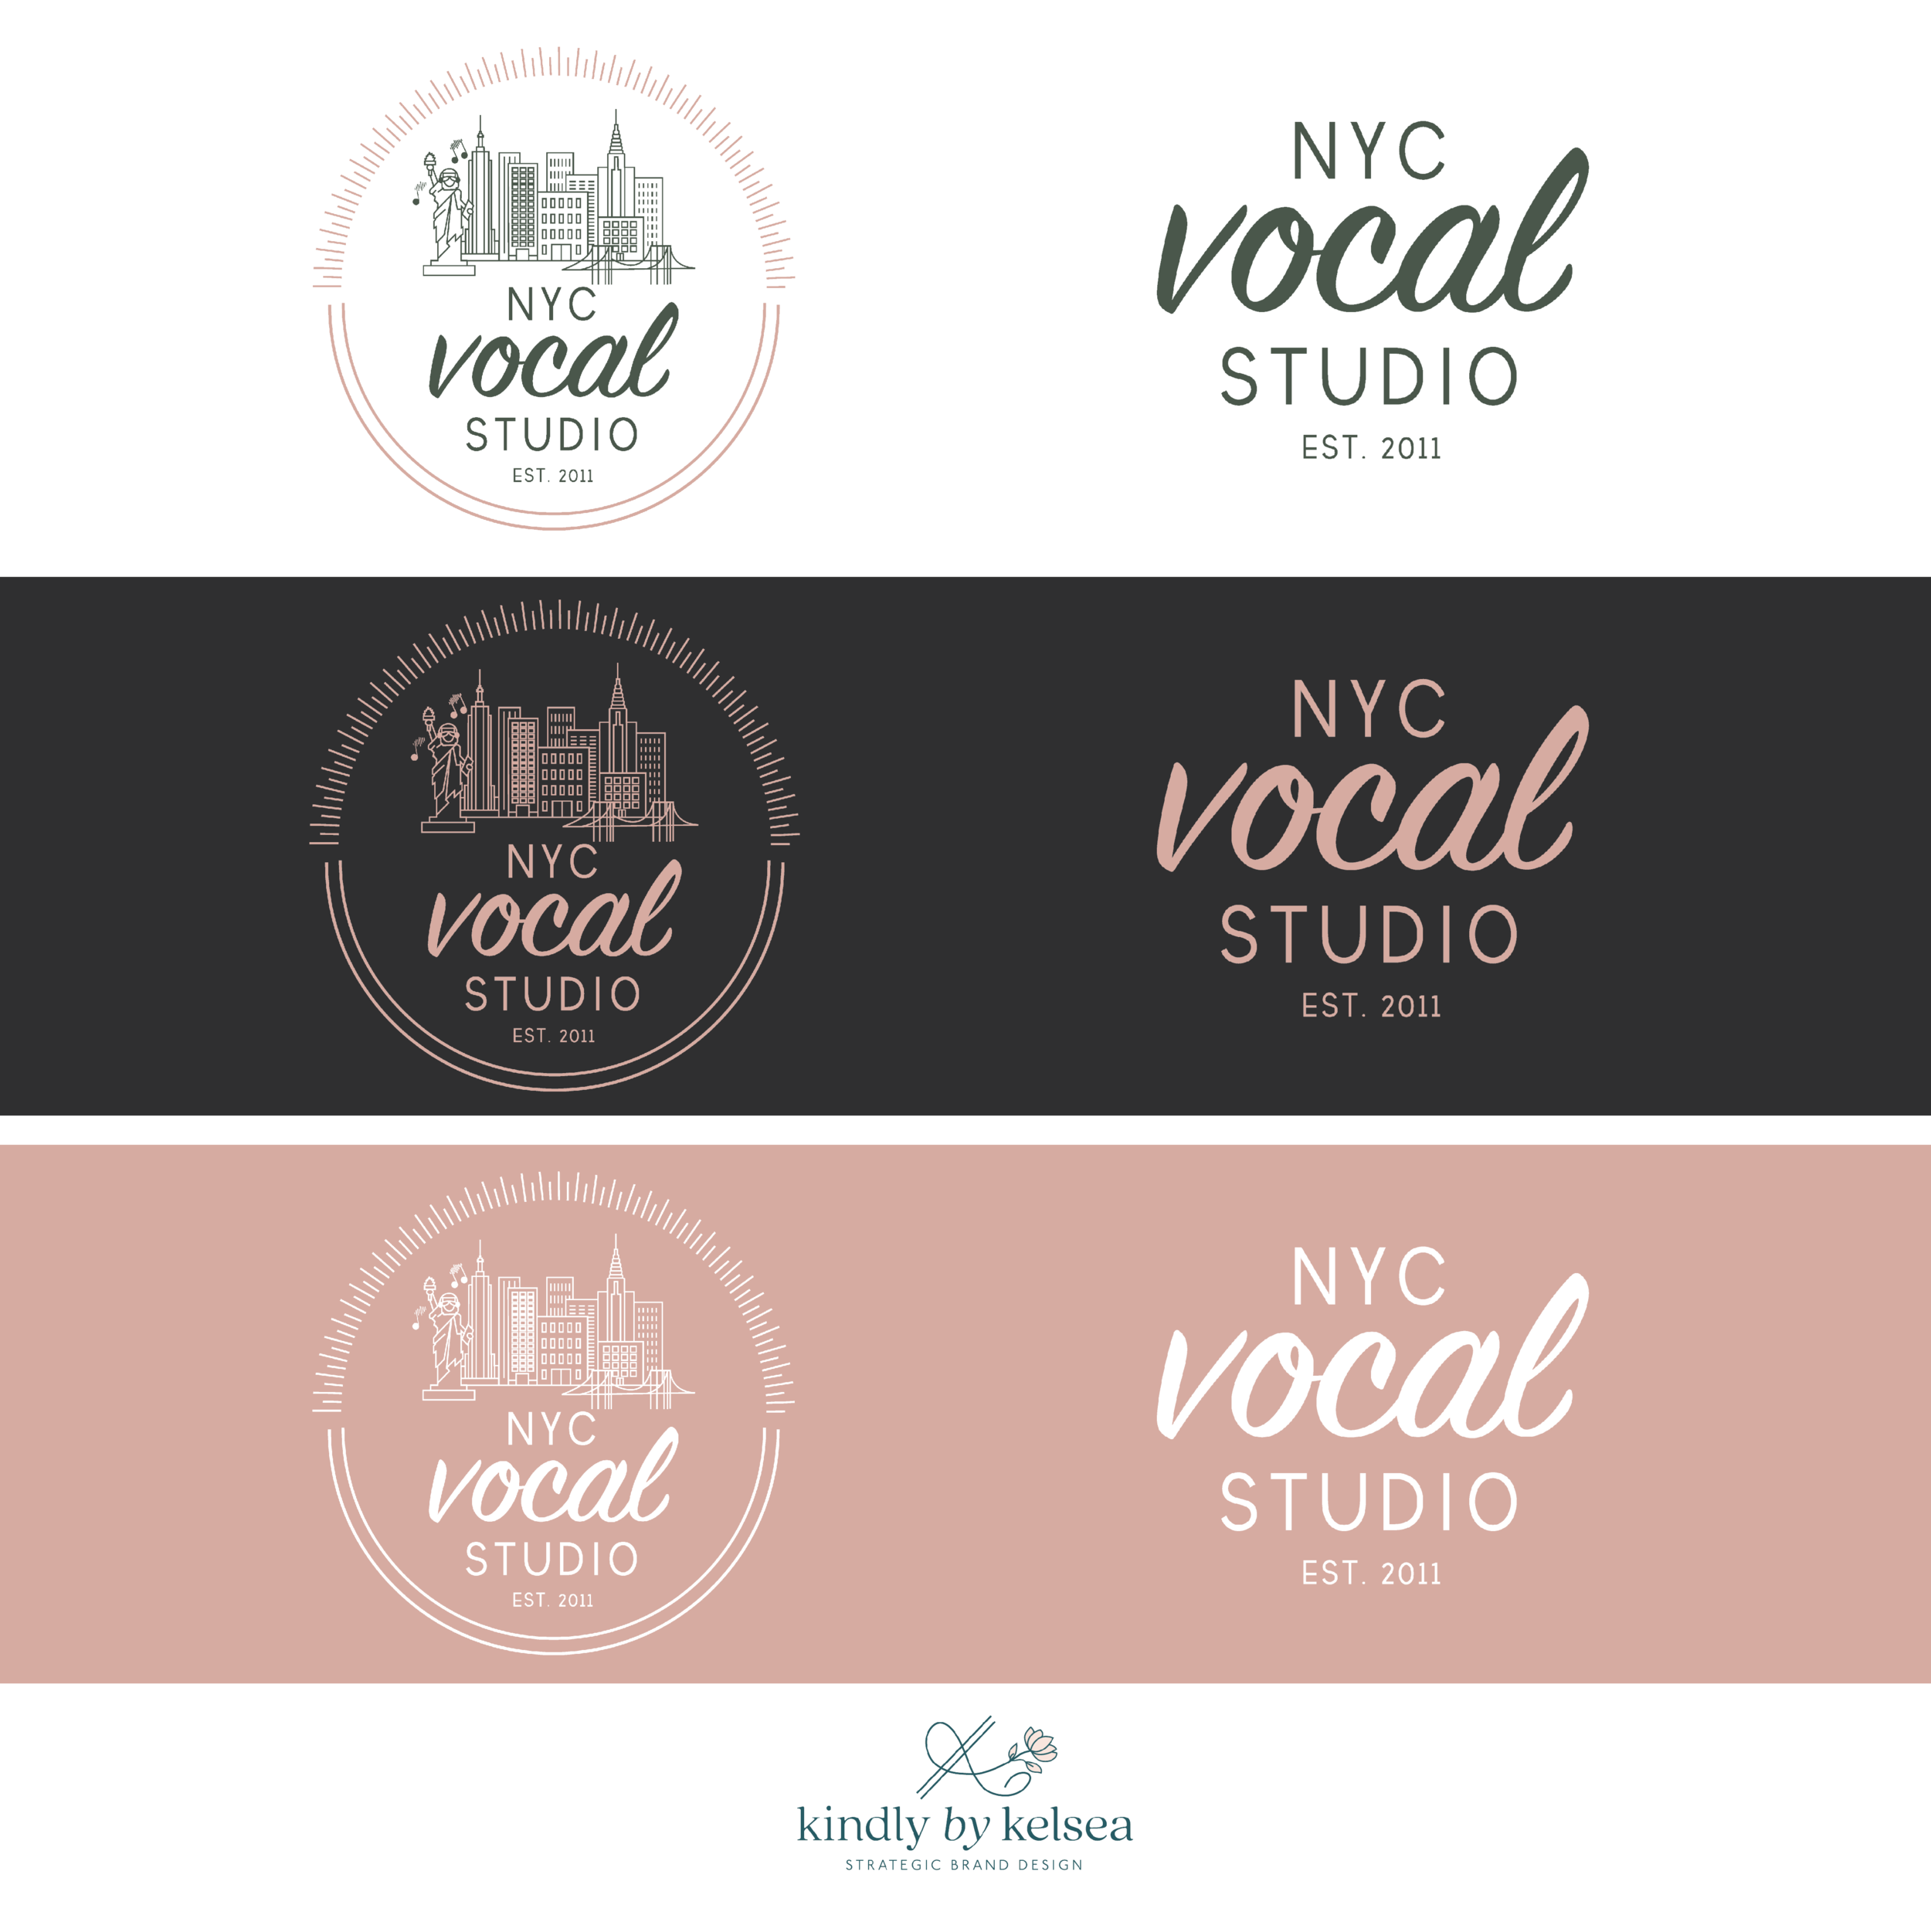 NYC Vocal Studio Manhattan Brand and Logo Design by Kindly by Kelsea